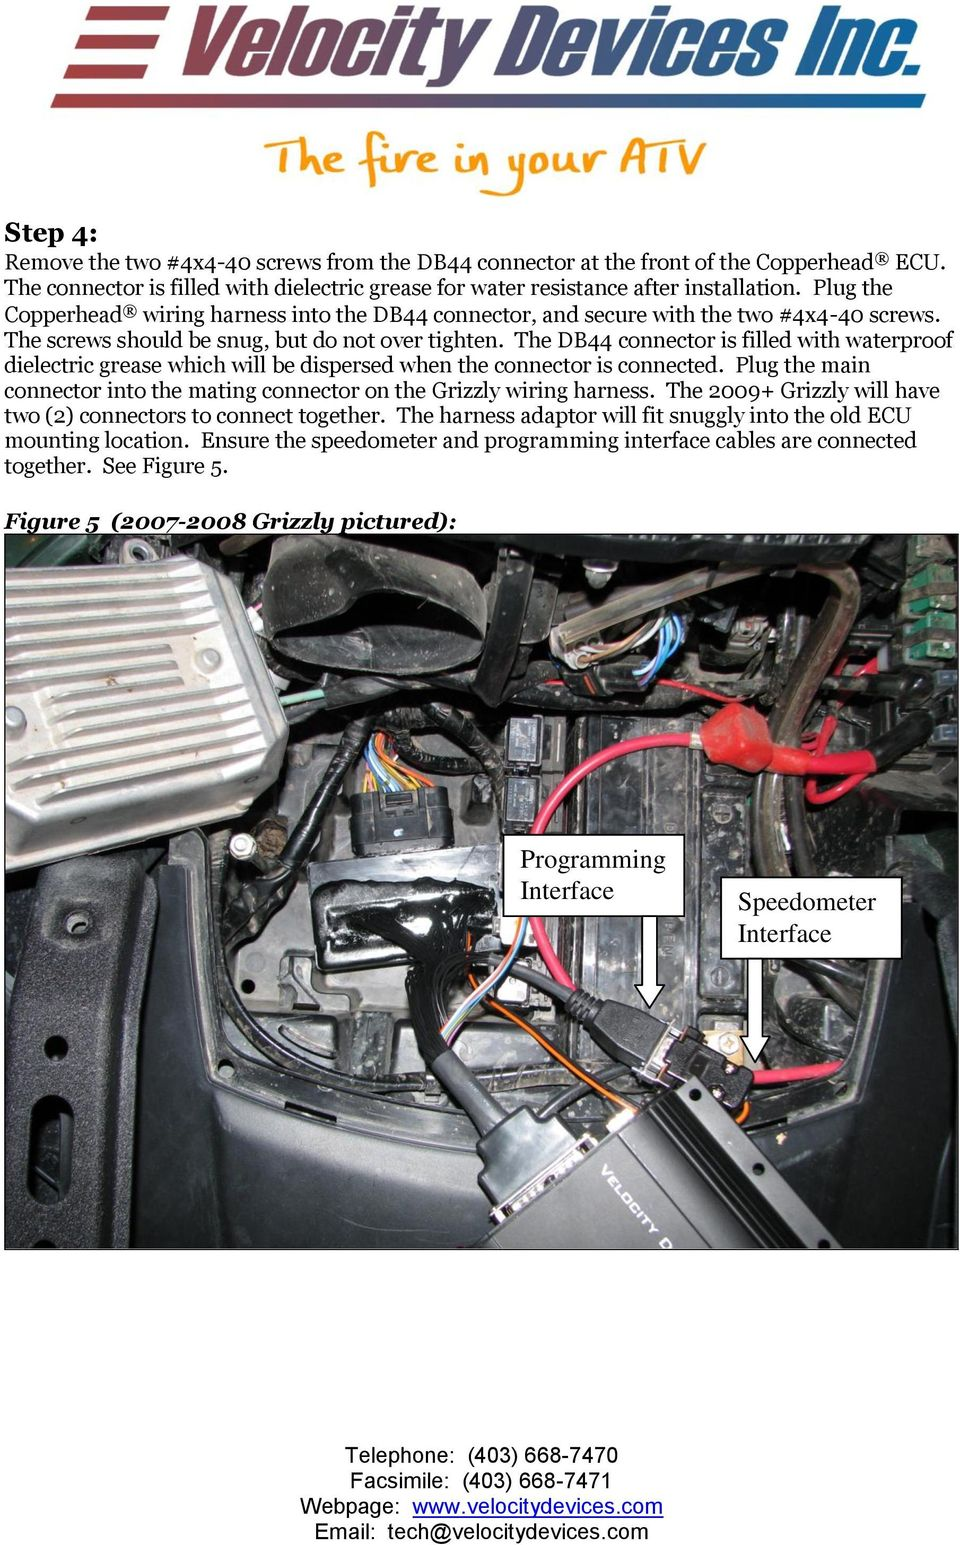 Vdi Copperhead Gen2 Cdi Installation Instructions Yamaha Grizzly Circuit And Wiring Diagram For Dual Fire Capacitor Discharge Ignition System From Ems The Db44 Connector Is Filled With Waterproof Dielectric Grease Which Will Be Dispersed When